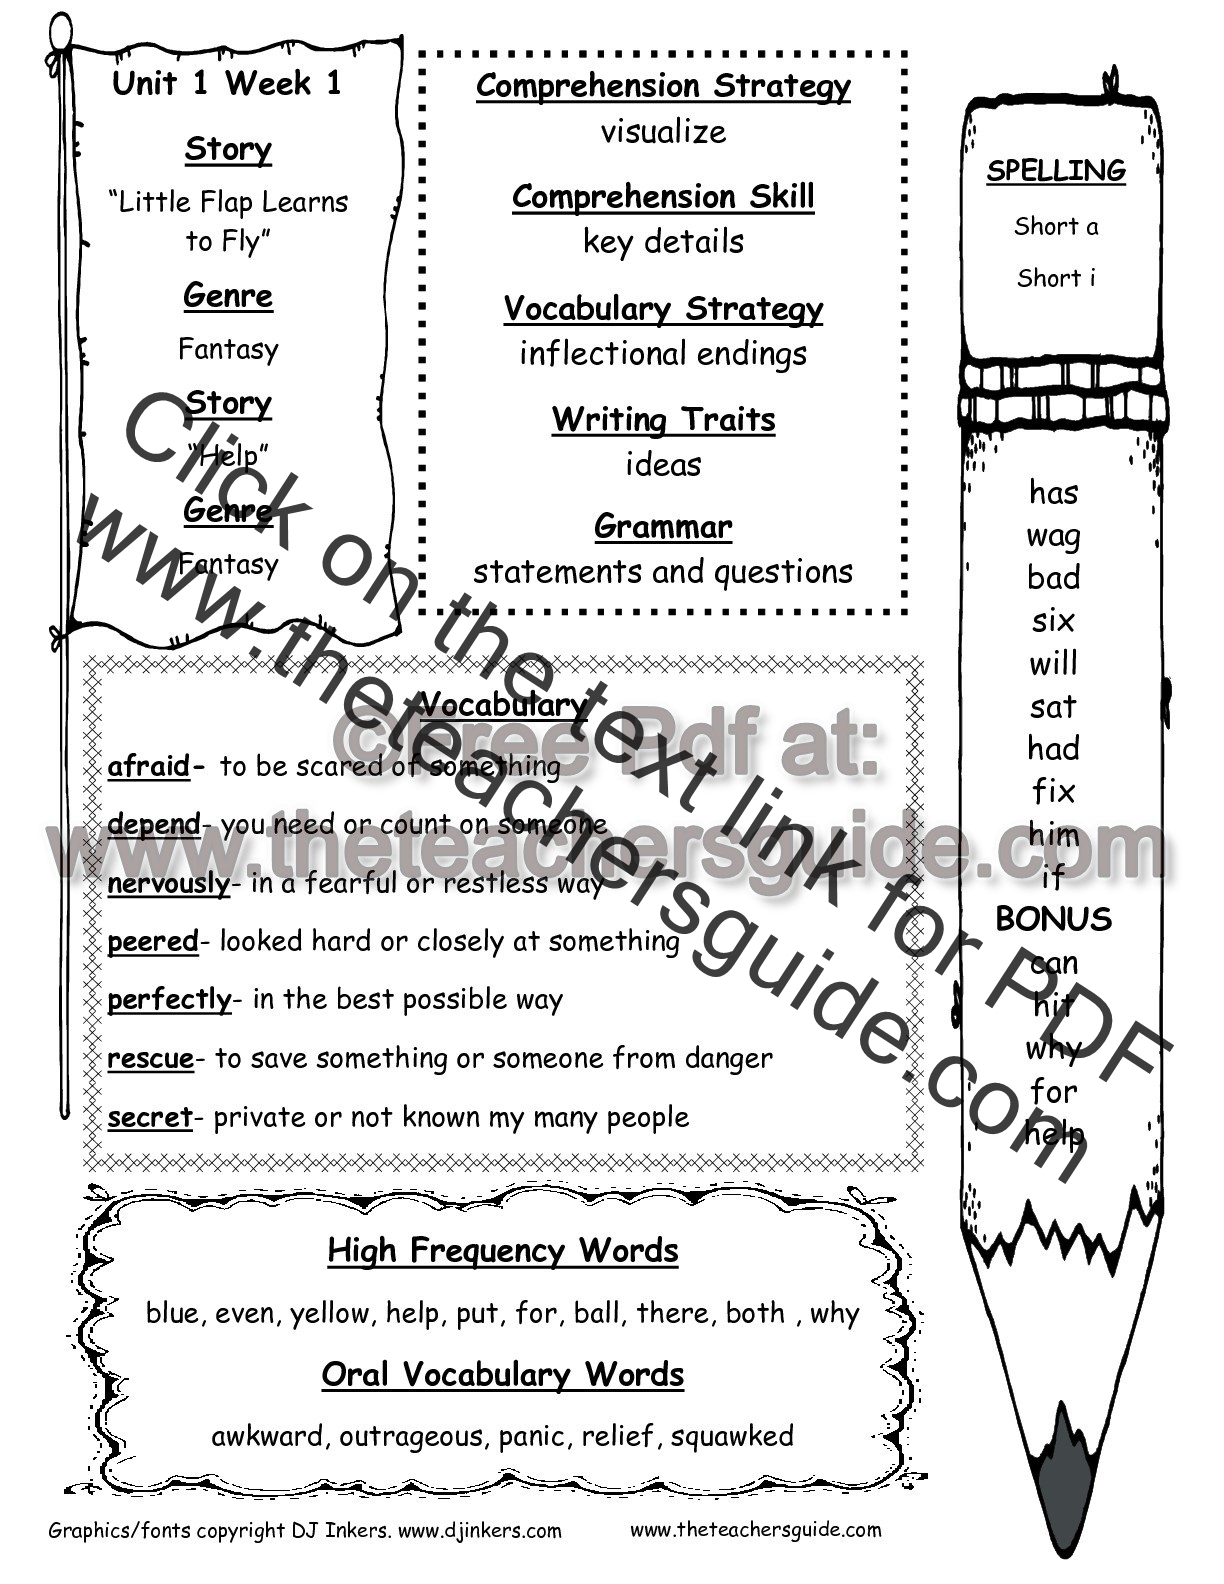 Worksheets Science Worksheets For 2nd Graders mcgraw hill wonders second grade resources and printouts unit one week printout